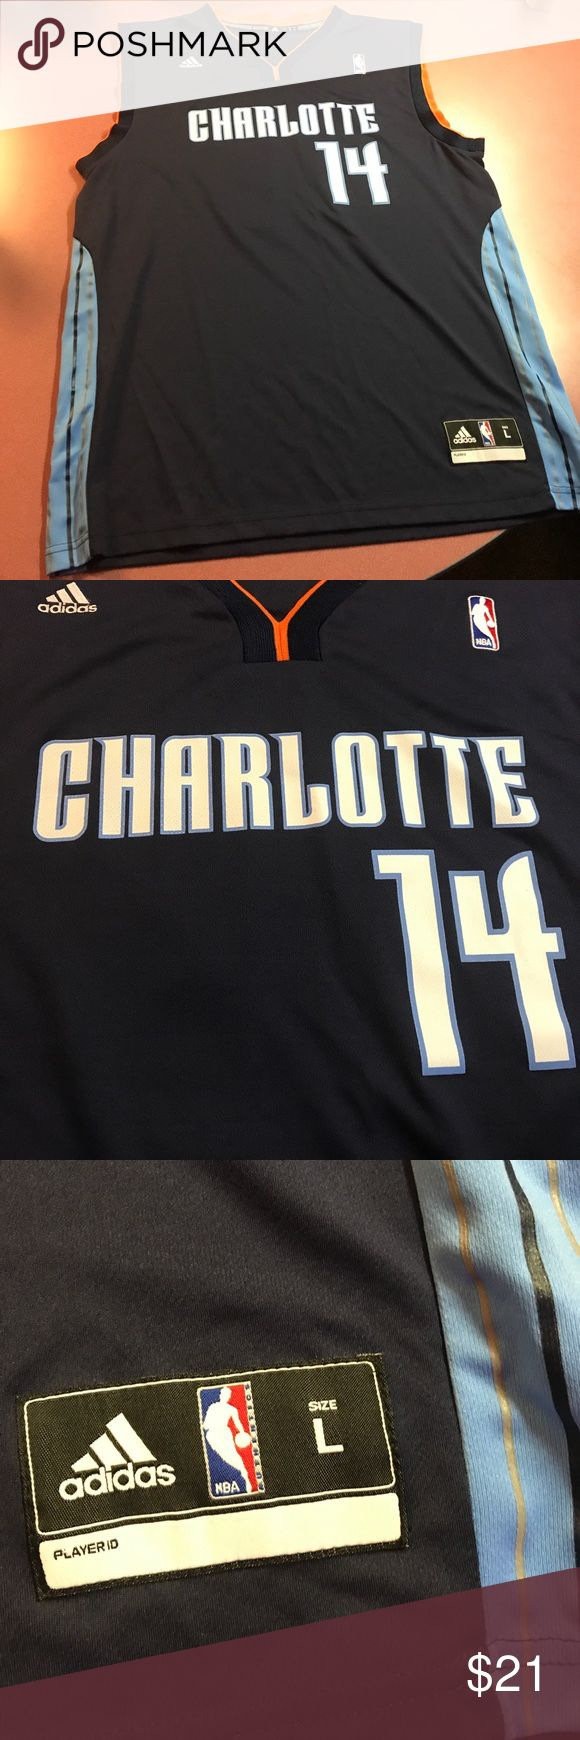 Charlotte Bobcats Michael Kidd-Gilchrist Jersey Hello! Thank you for viewing my listing. This is a Charlotte Bobcats jersey of forward Michael Kidd-Gilchrist. This jersey is pre-owned, but in great condition with no apparent flaws. This is a Size large in Men's. If you have any questions, please do not hesitate to ask. Thank you! adidas Shirts Tees - Short Sleeve